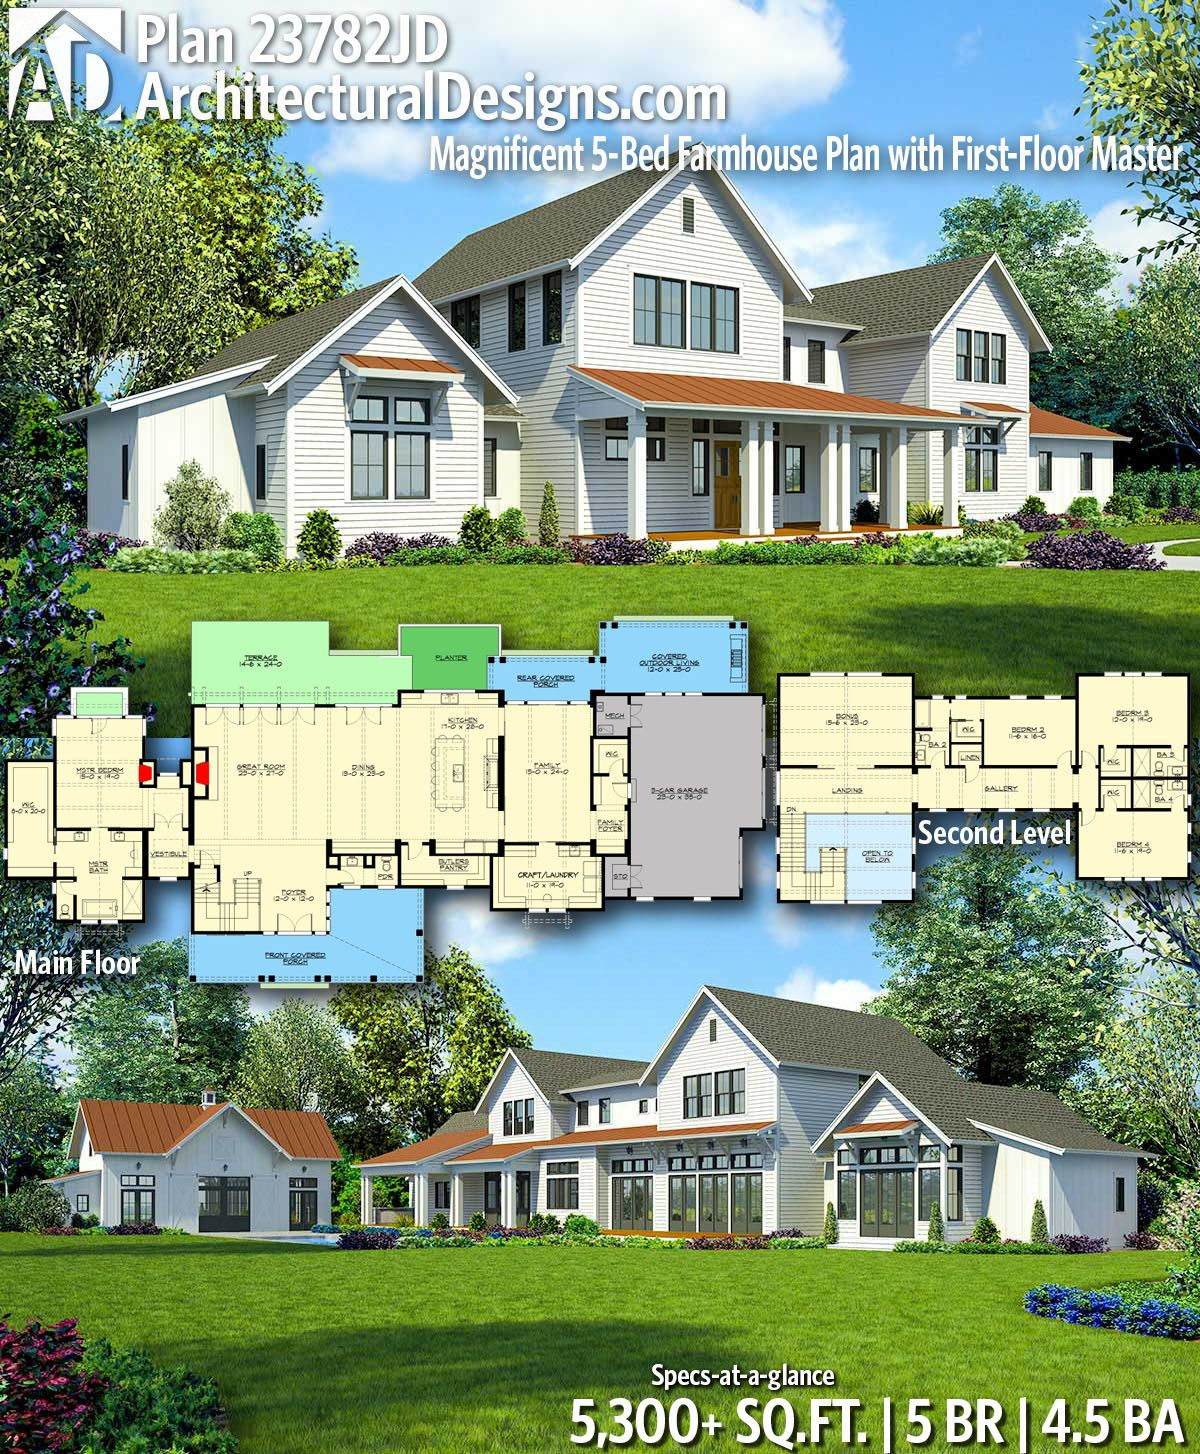 Plan 23782jd Sprawling Modern Farmhouse Plan With First Floor Master Modern Farmhouse Plans Farmhouse Plans House Plans Farmhouse